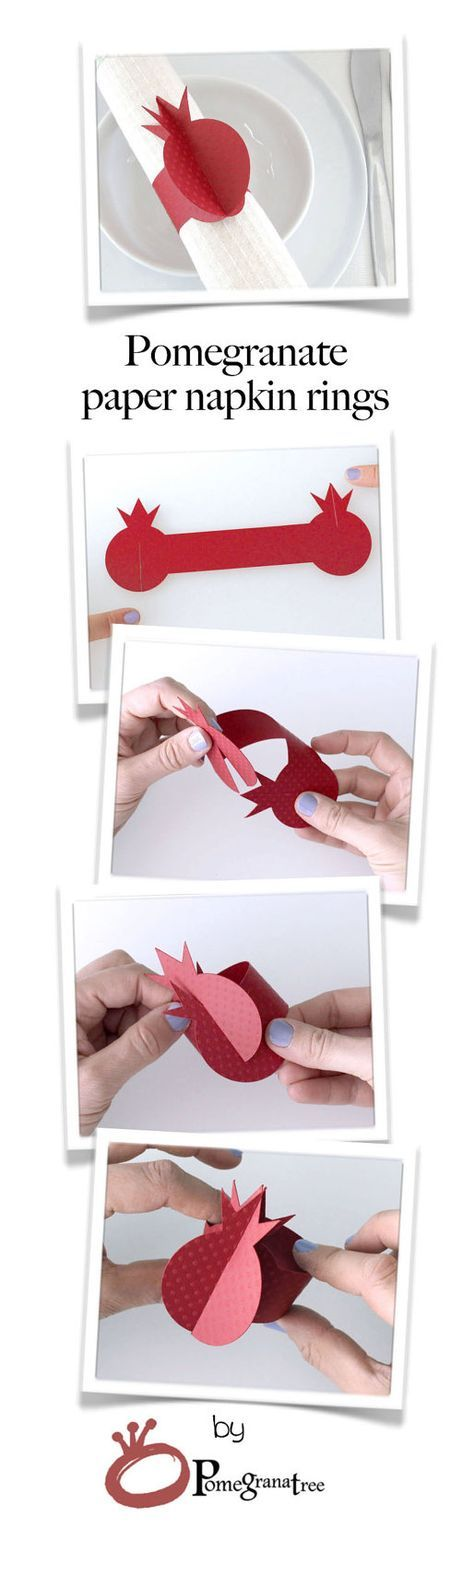 Paper Napkin Rings Red Pomegranate Napkin Rings, Rosh Hashanah Table Decor, Red Napkin Holders, Jewish Holiday Table, Set of 10 Crimson PM05 These Pomegranate shaped napkin rings are cut out of premium paper. These napkin rings are a beautiful added touch for your special occasion and perfect for decorating any holiday table. Napkin rings are sold in sets of TEN. Napkin rings are shipped flat. Easy assembly - no glue or tape needed! Size: Flat: 7.1 / 18cm Assembled ring: approximately 1....